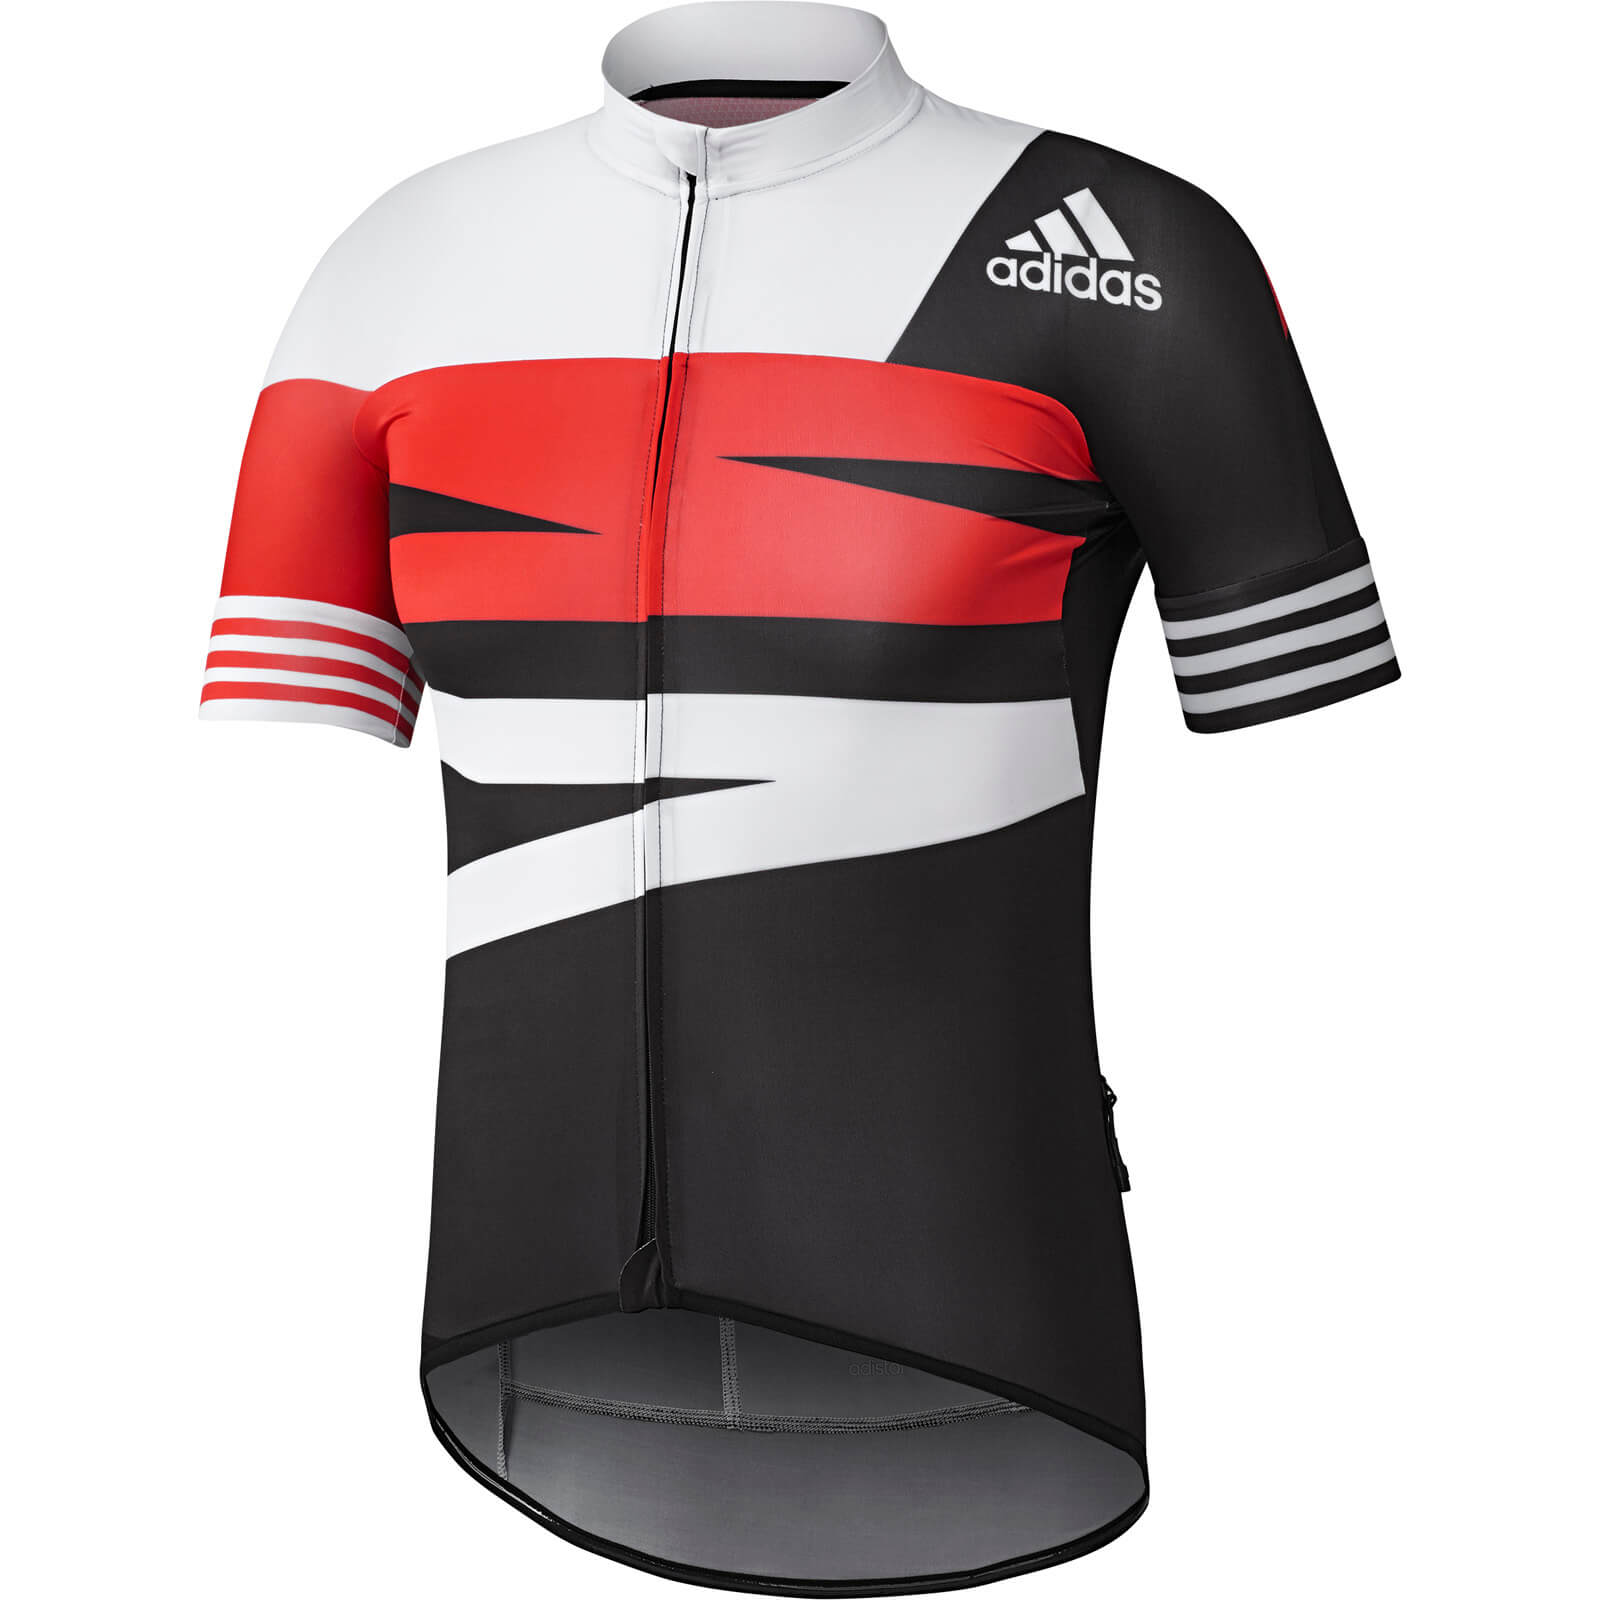 650ab922b adidas Men s Adistar Jersey - Black White Red